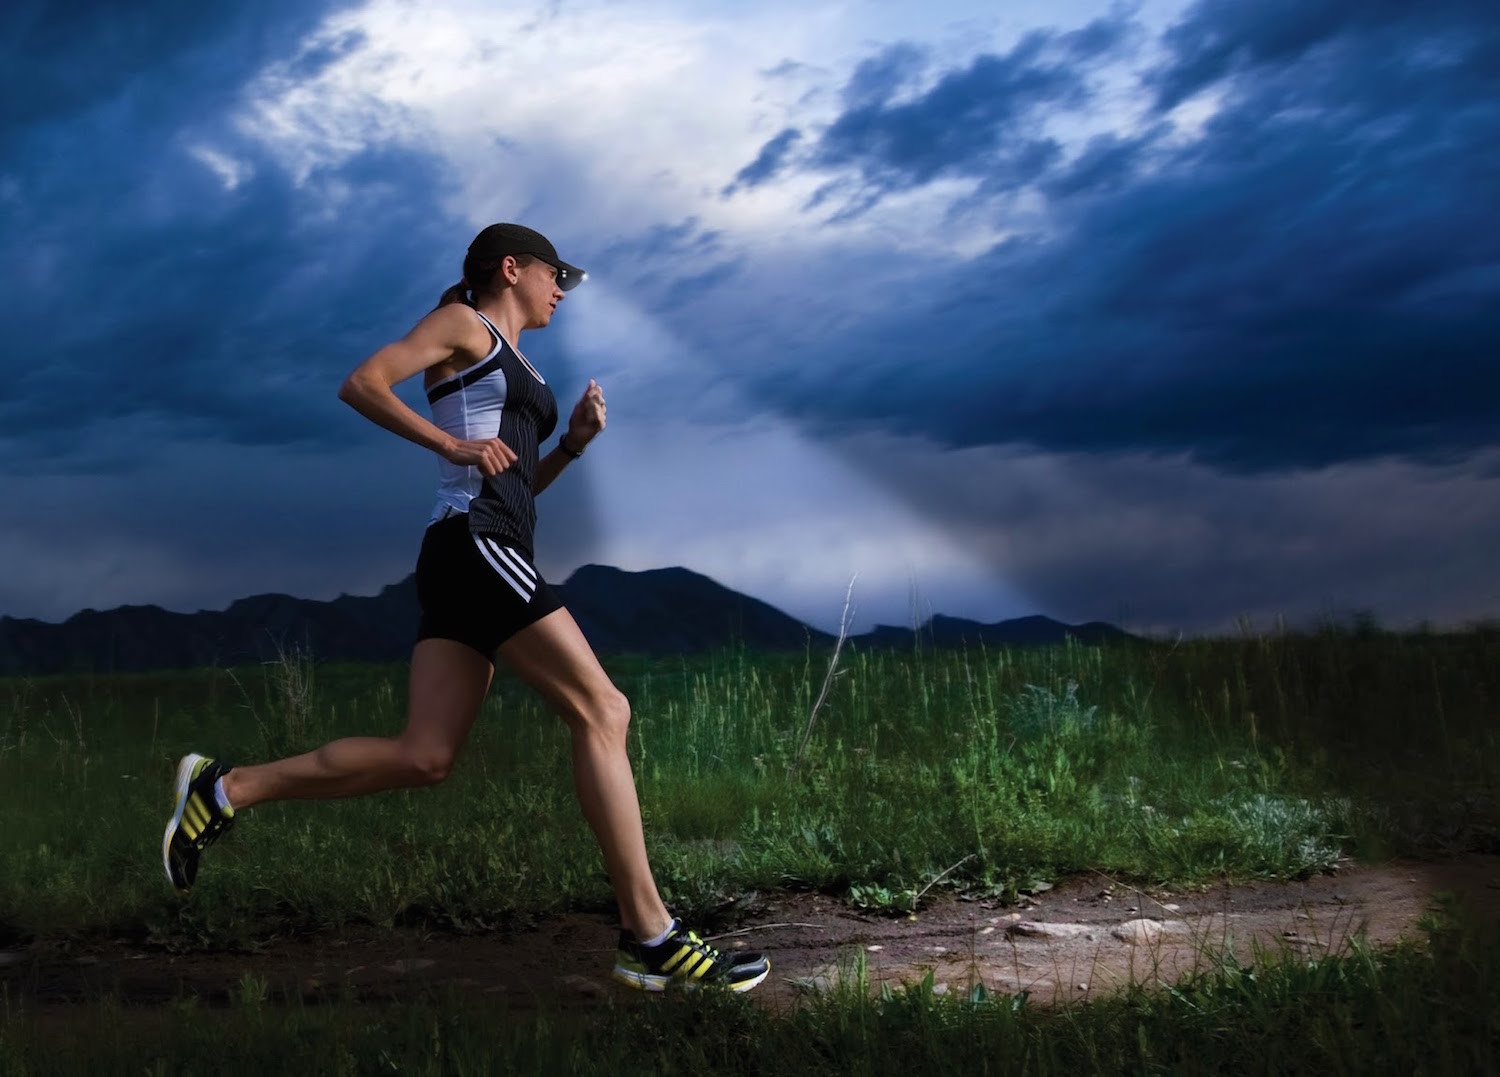 Could Running at Night Make You Faster?